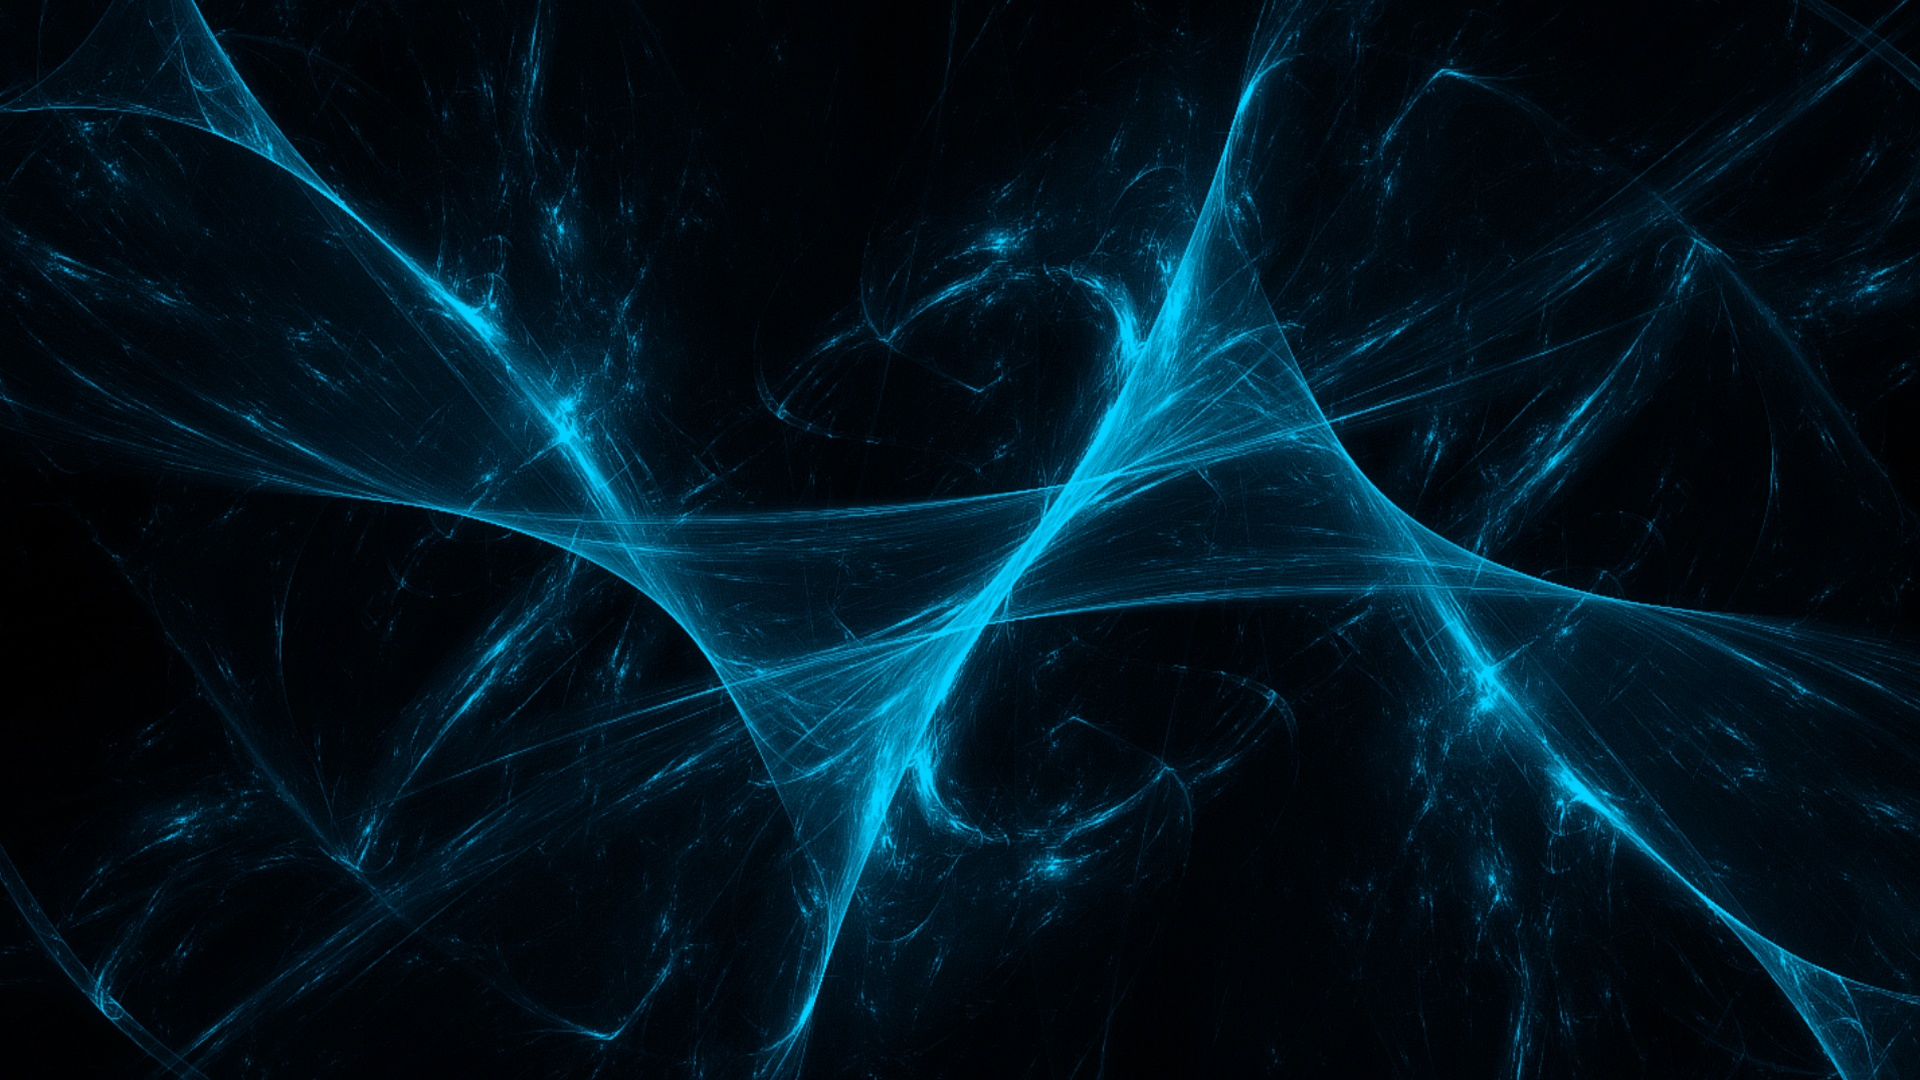 Abstract Wallpapers High Resolution Hi Res Abstract Images